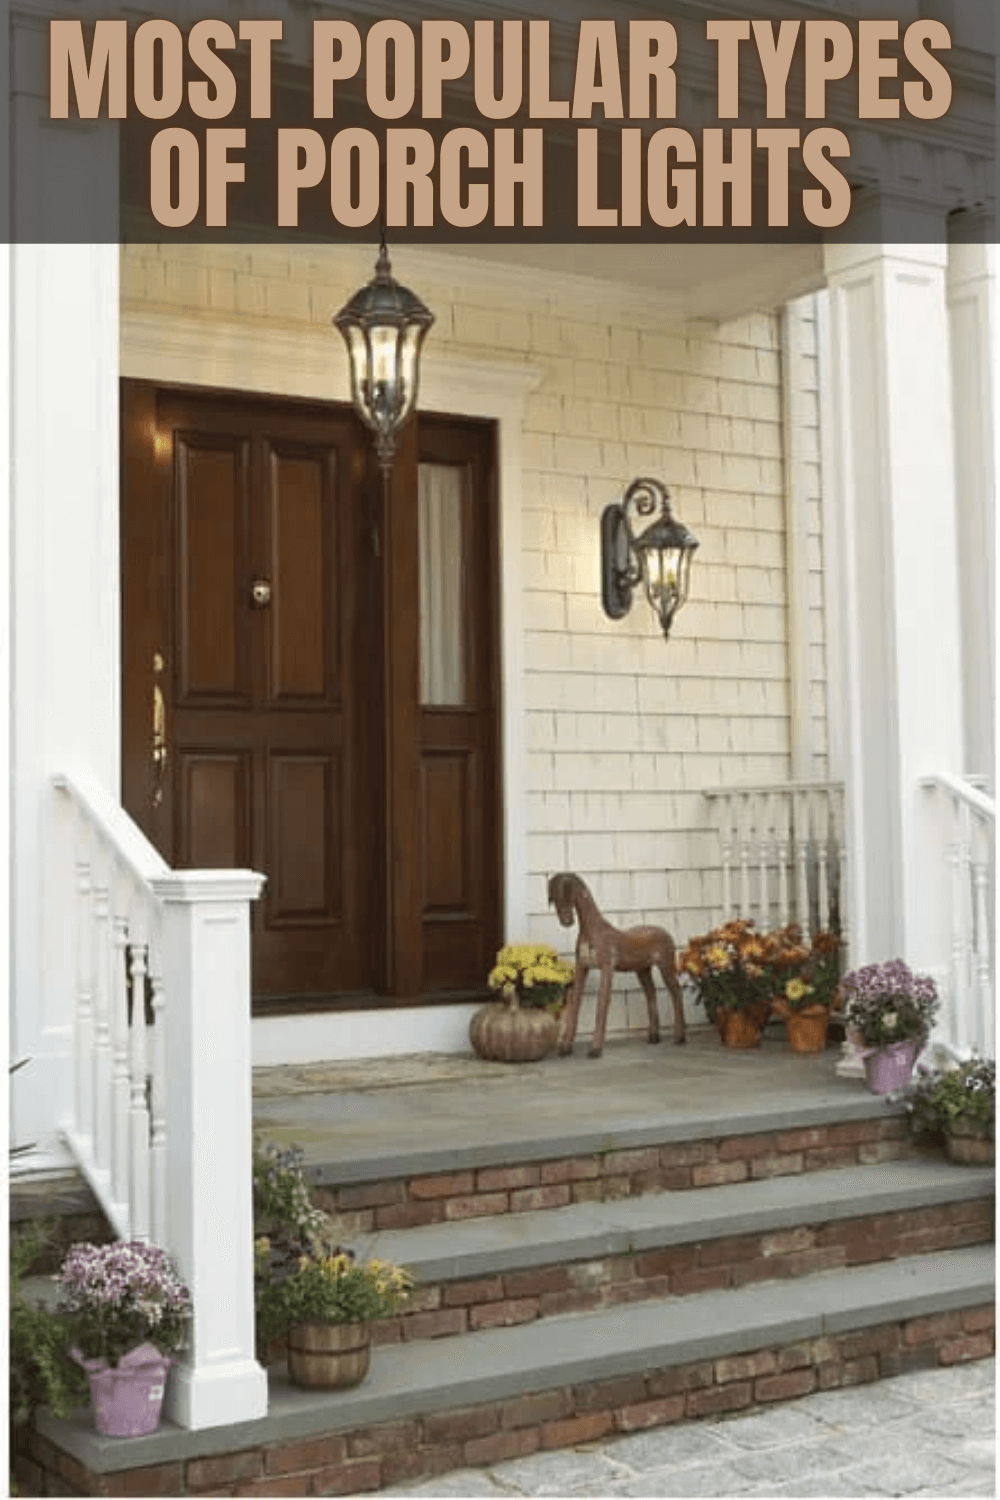 MOST POPULAR TYPES OF PORCH LIGHTS